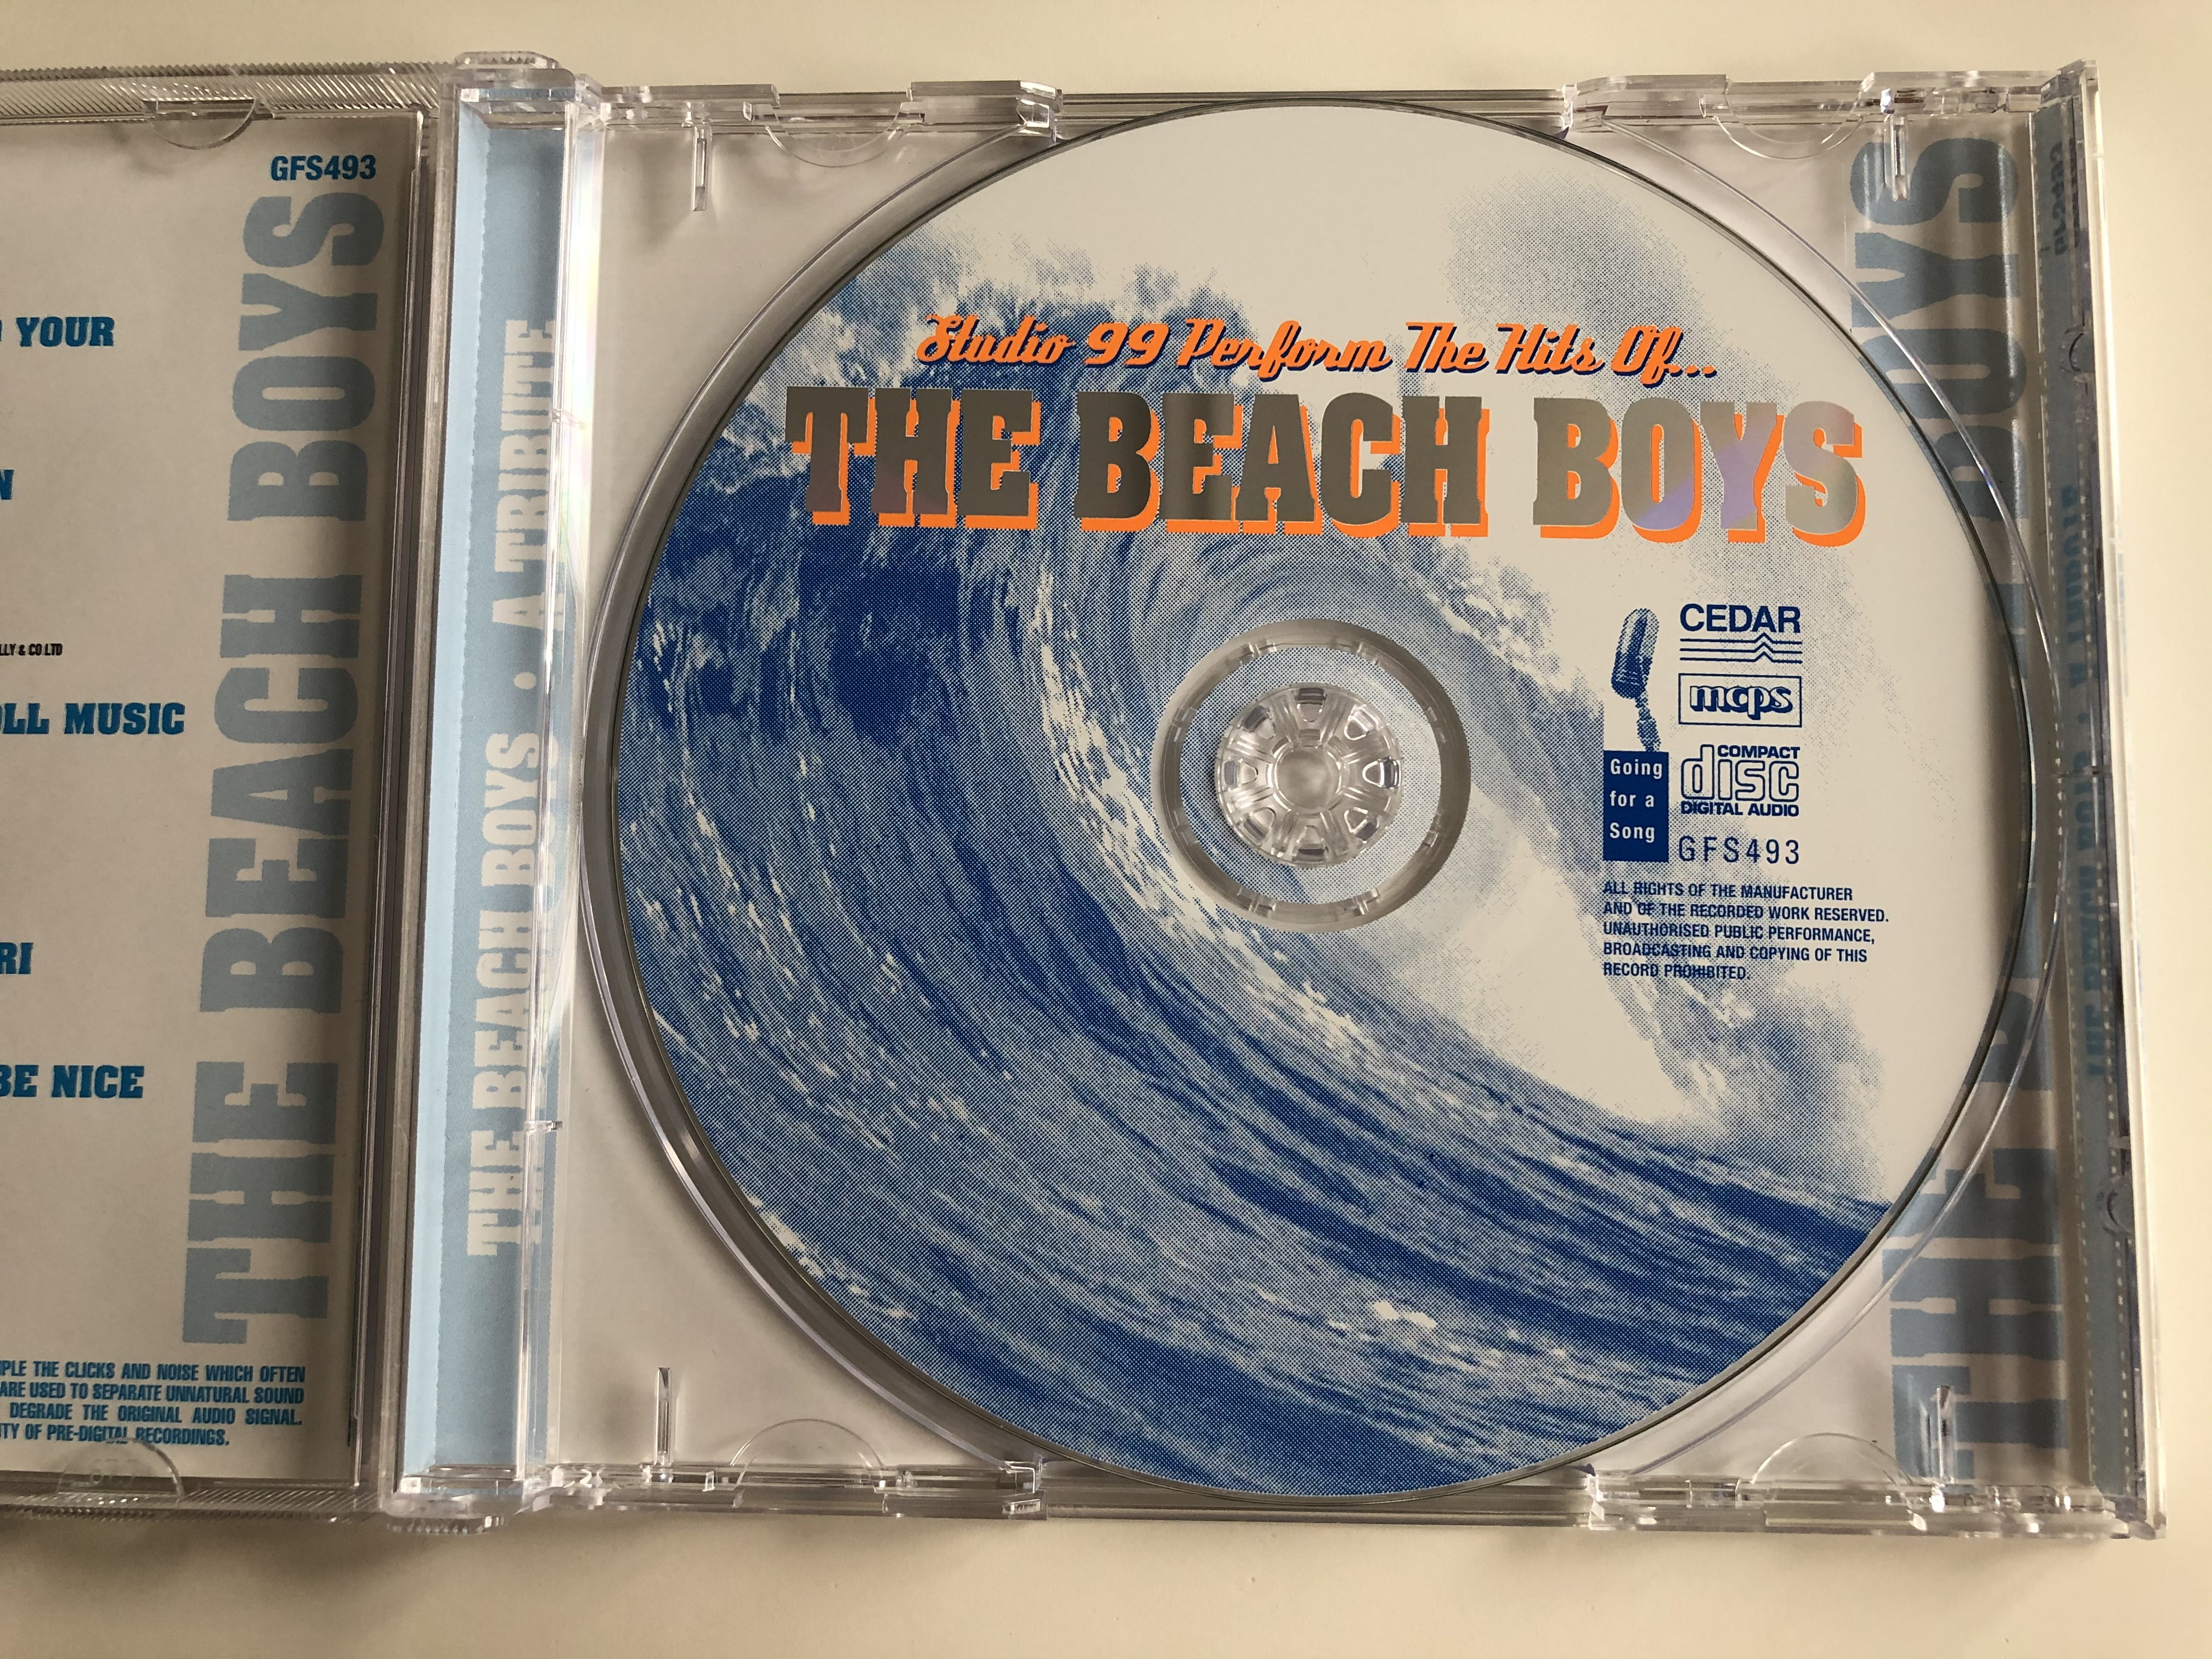 studio-99-perform-the-hits-of...-the-beach-boys-endless-summer-classics-including...-surfin-usa-good-vibrations-california-girls-surfer-girl-sloop-john-b-many-more-going-for-a-song-a-3-.jpg